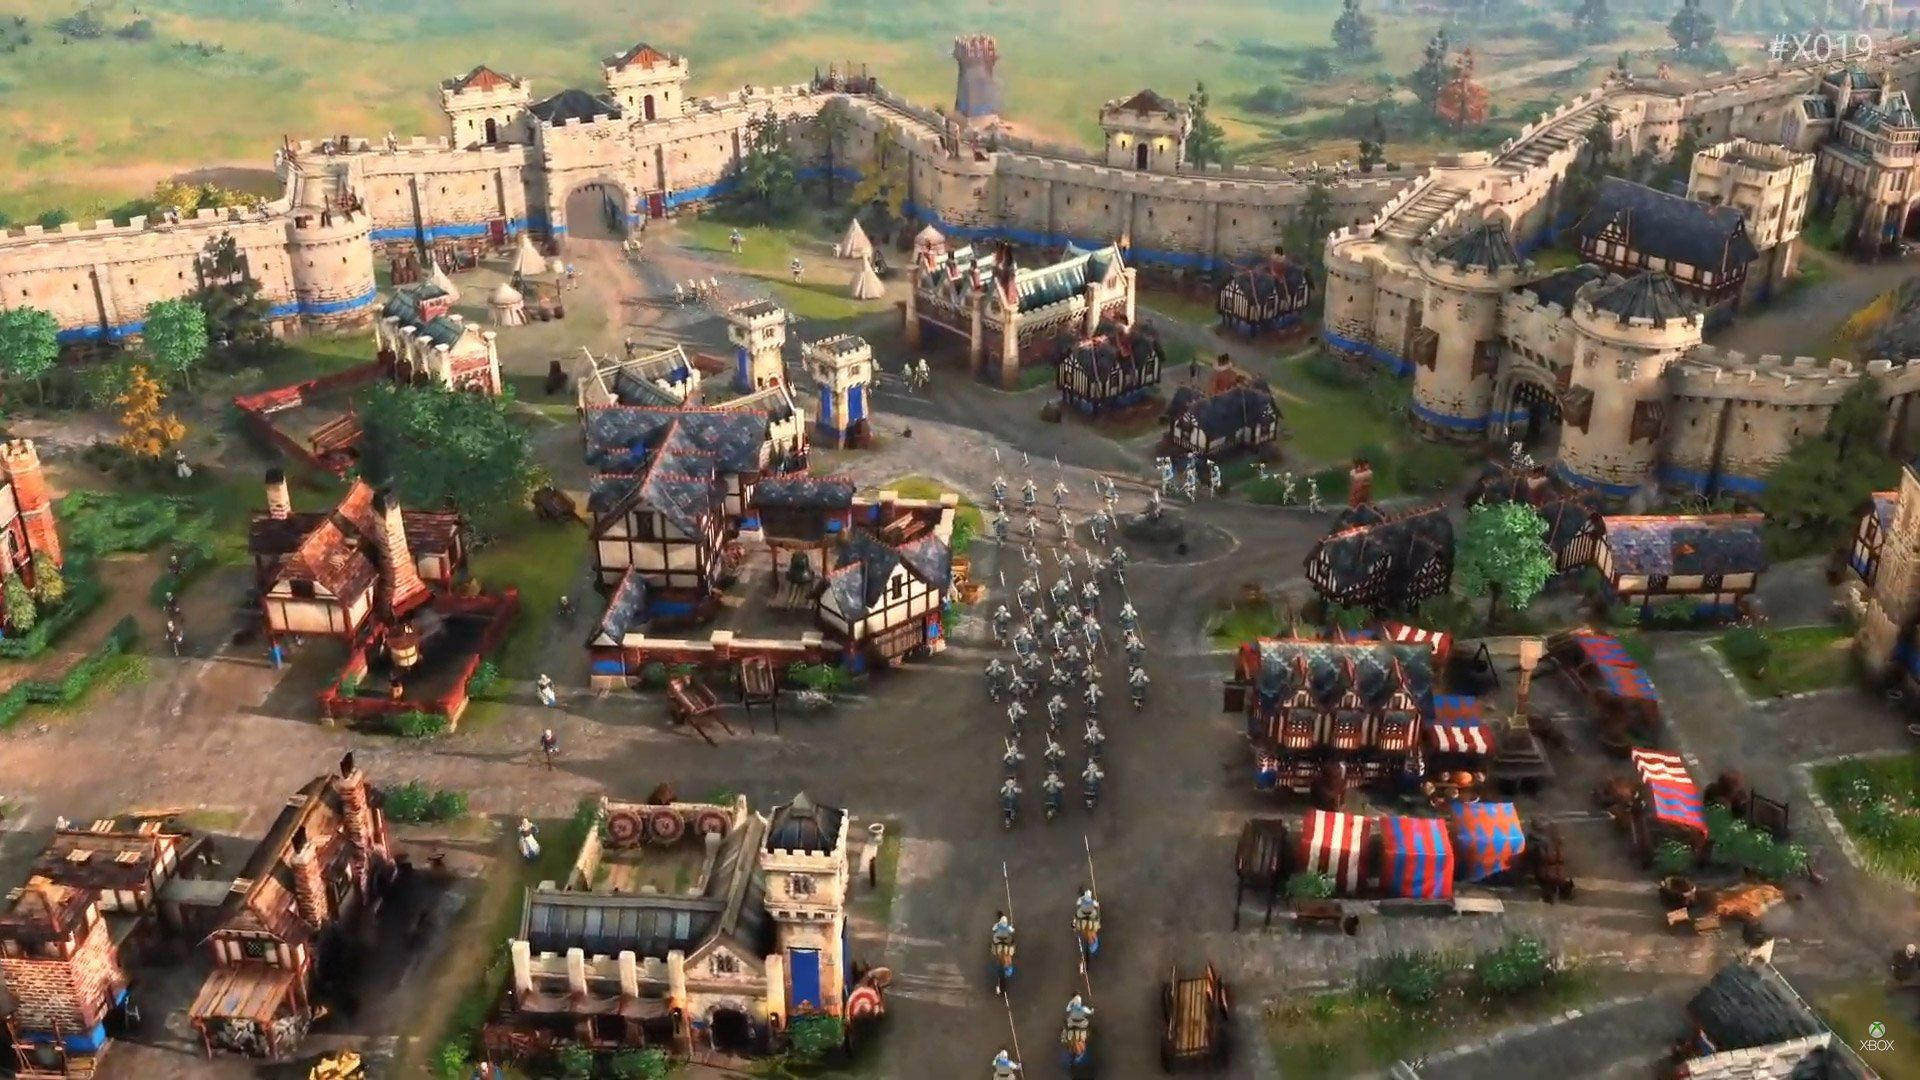 Age Of Empires Iv Had Its Gameplay Debut At X019 Age Of Empires